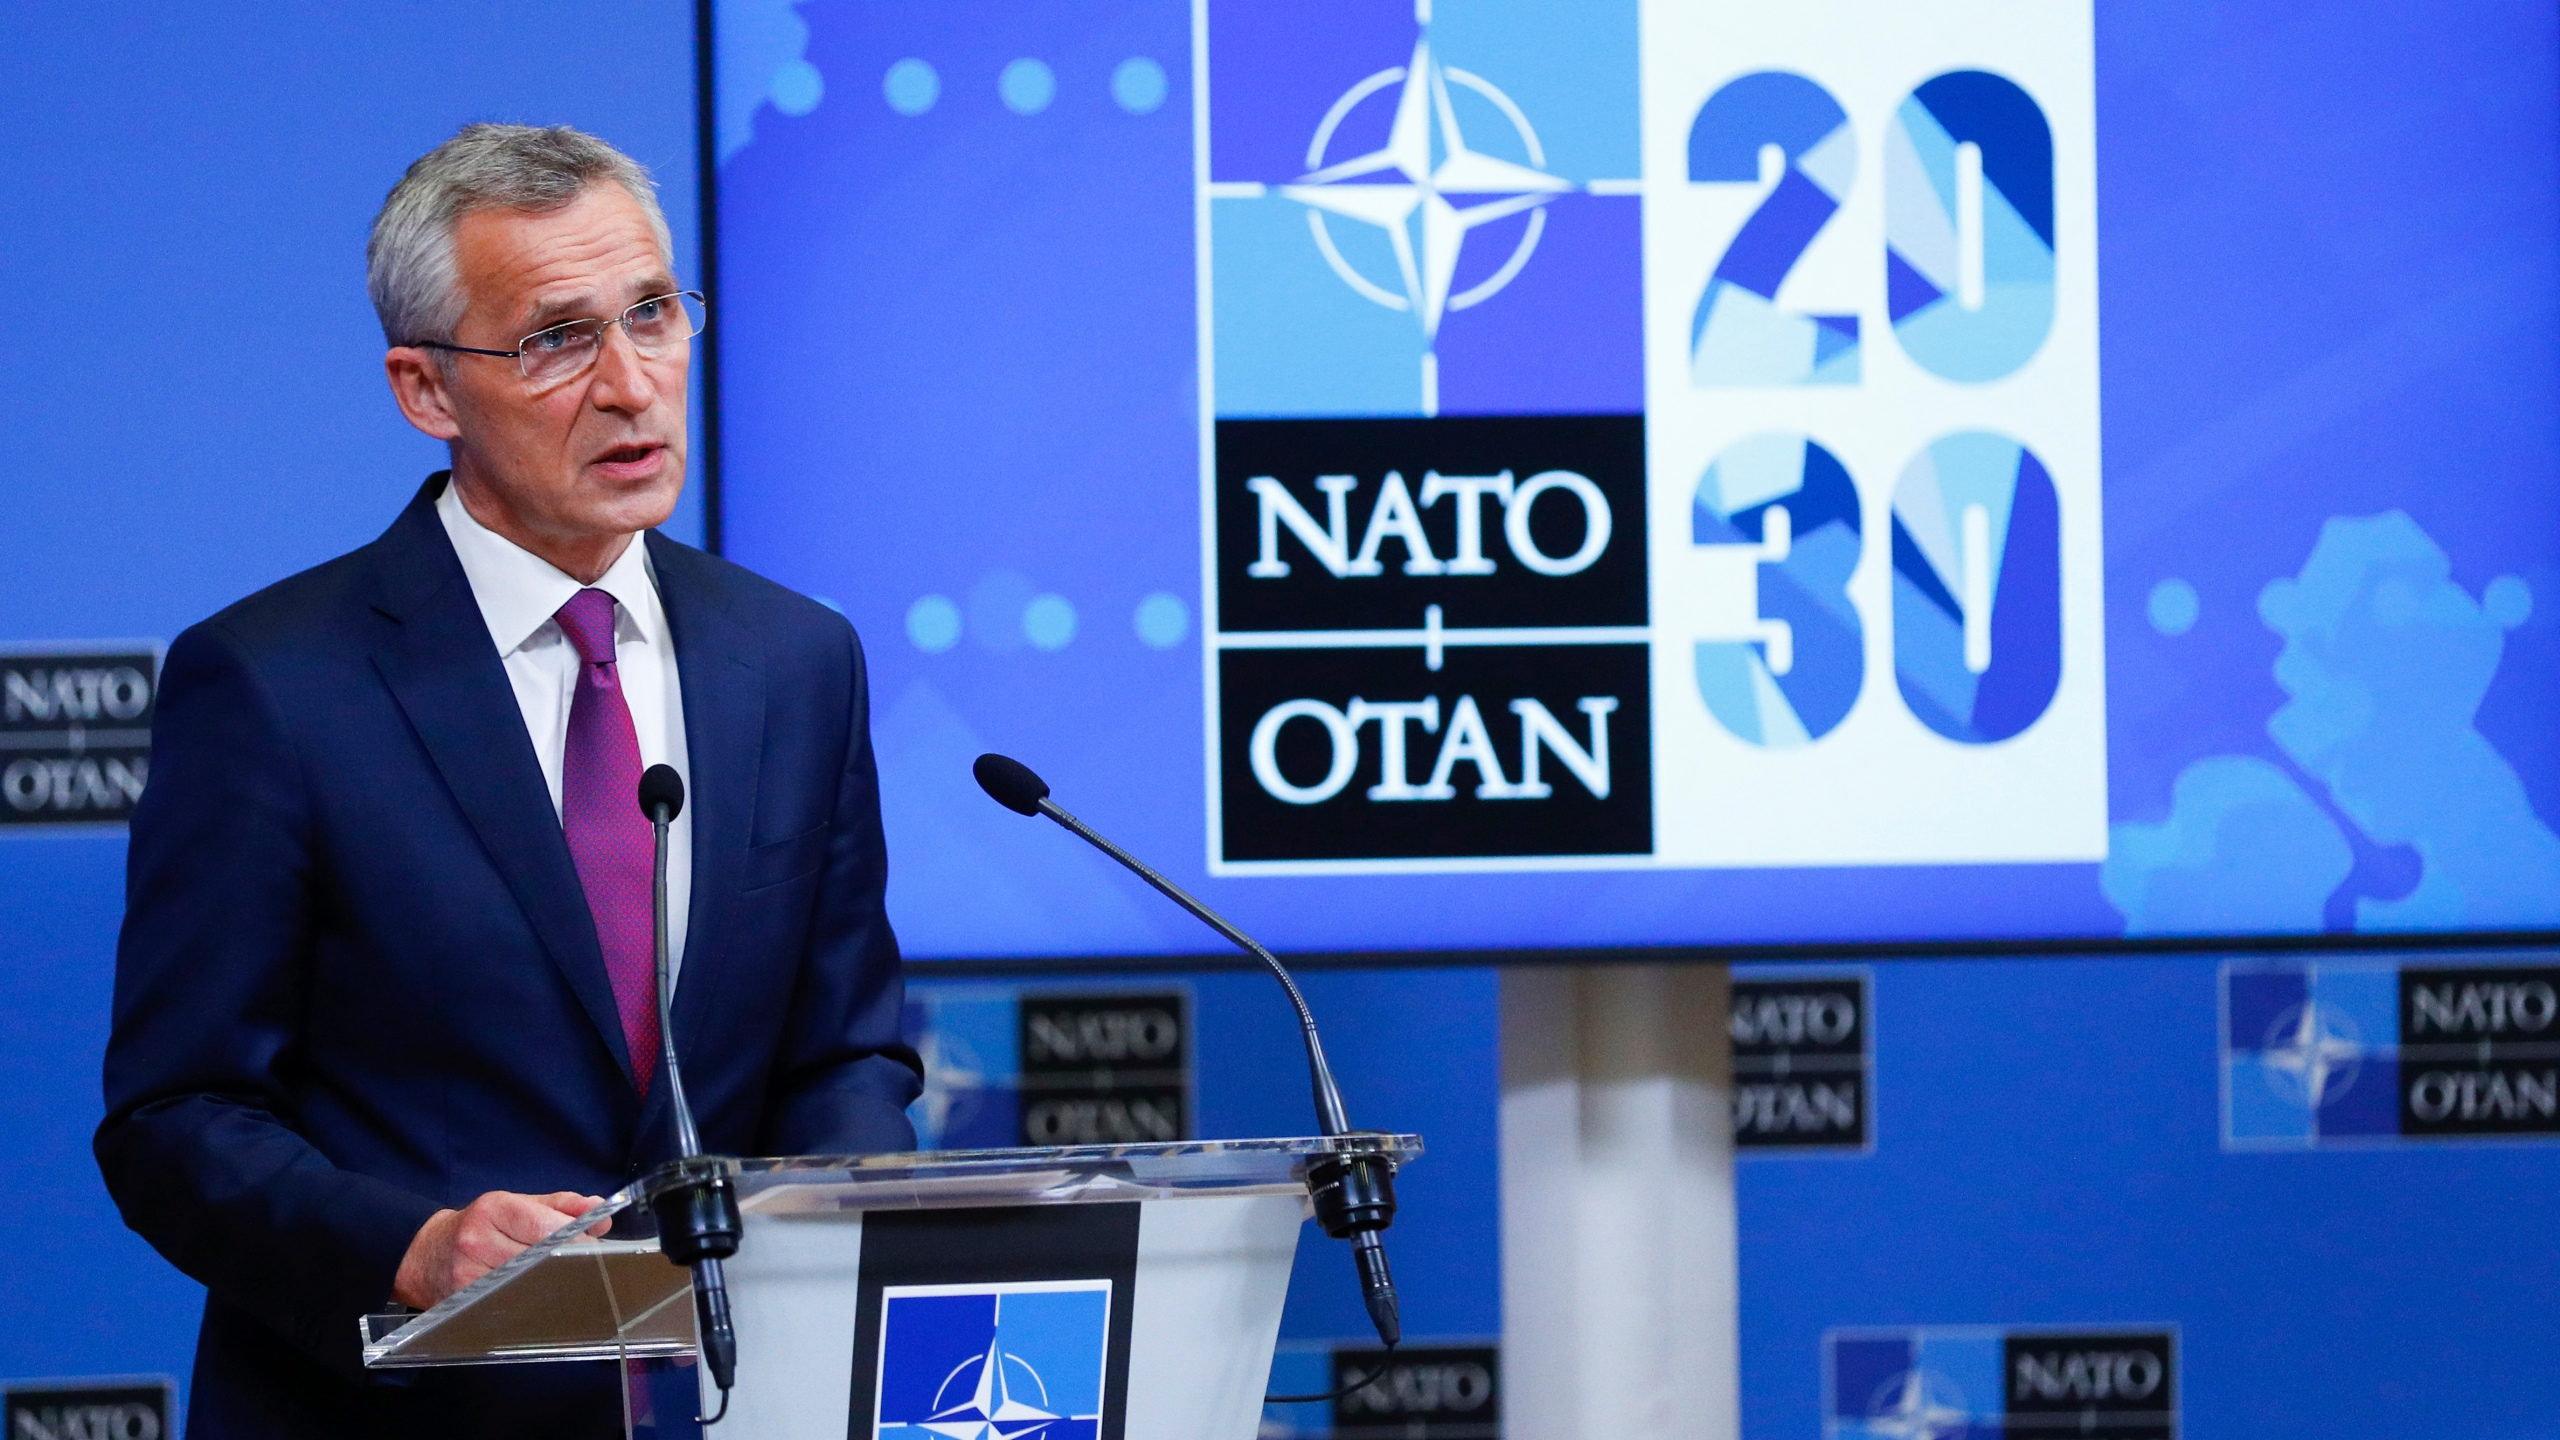 NATO Foreign Ministers hold an online North Atlantic Council meeting, in Brussels